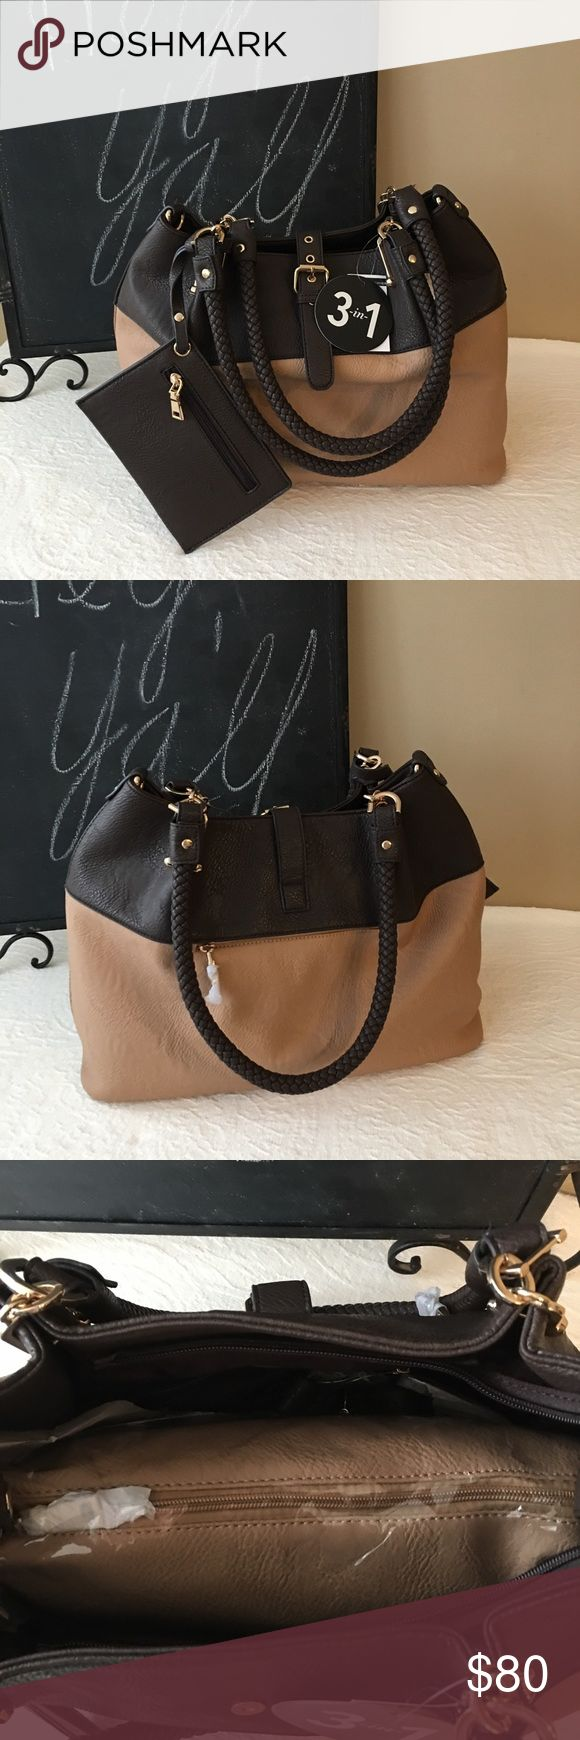 Wilson's Leather Black Rivet 3 in 1 carryall tote Large